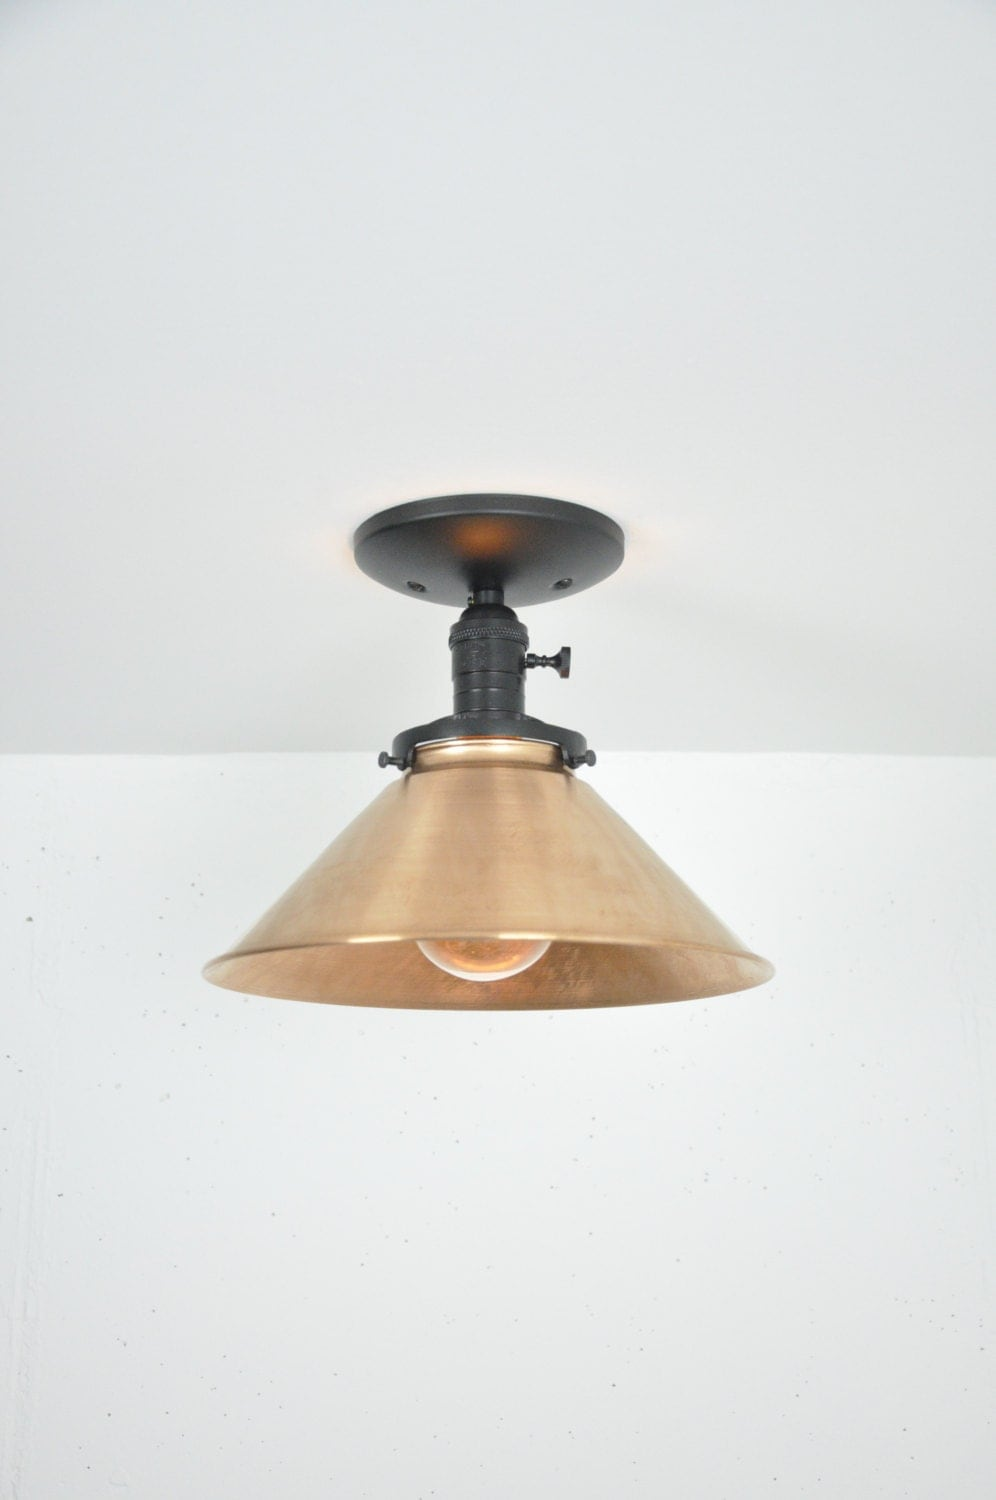 Ceiling Lights Copper : Inch copper ceiling light fixture